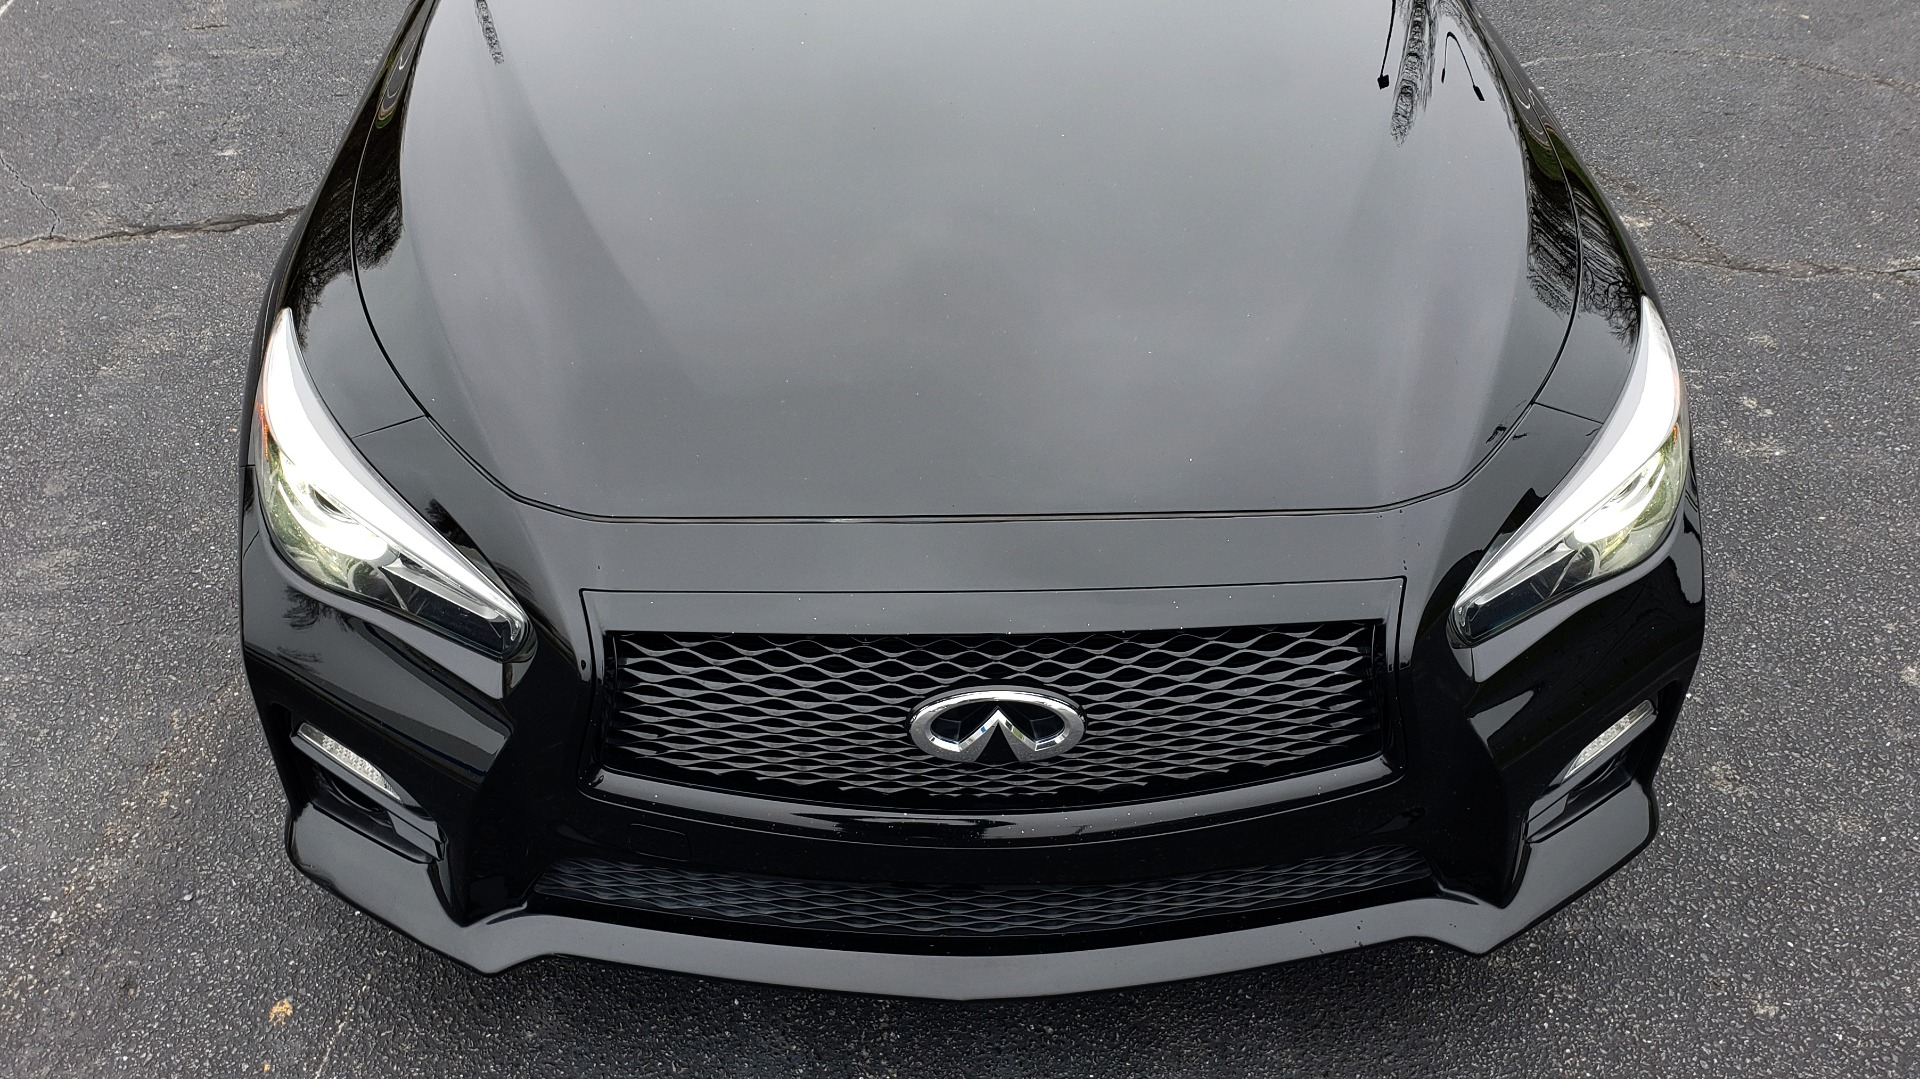 Used 2016 INFINITI Q50 3.0t PREMIUM SPORT AWD / NAV / SUNROOF / HTD STS / REARVIEW for sale Sold at Formula Imports in Charlotte NC 28227 29